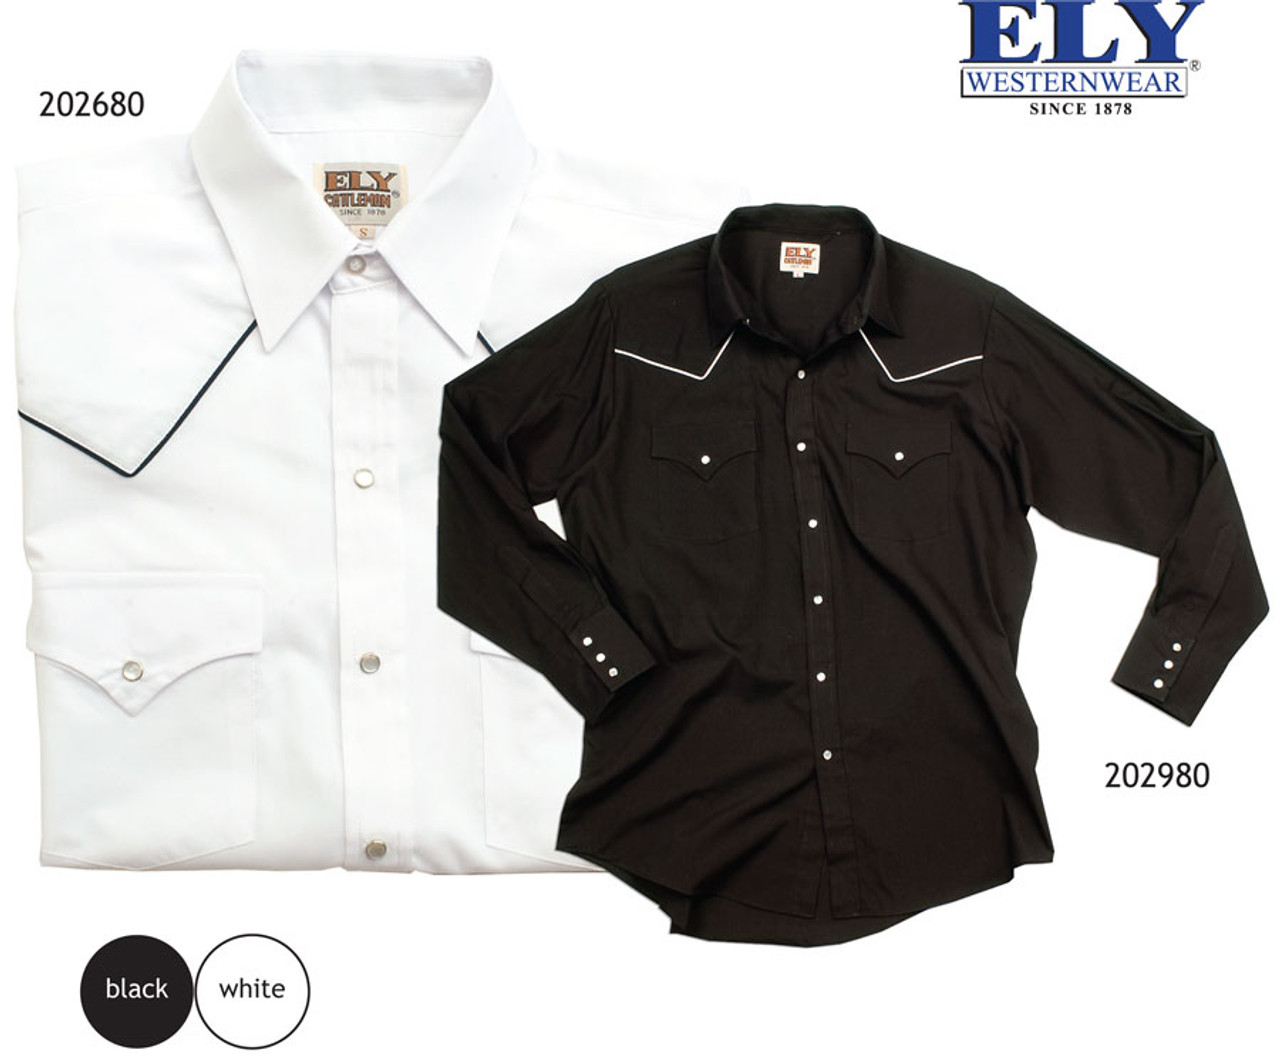 Western style uniform shirt with decorative piping